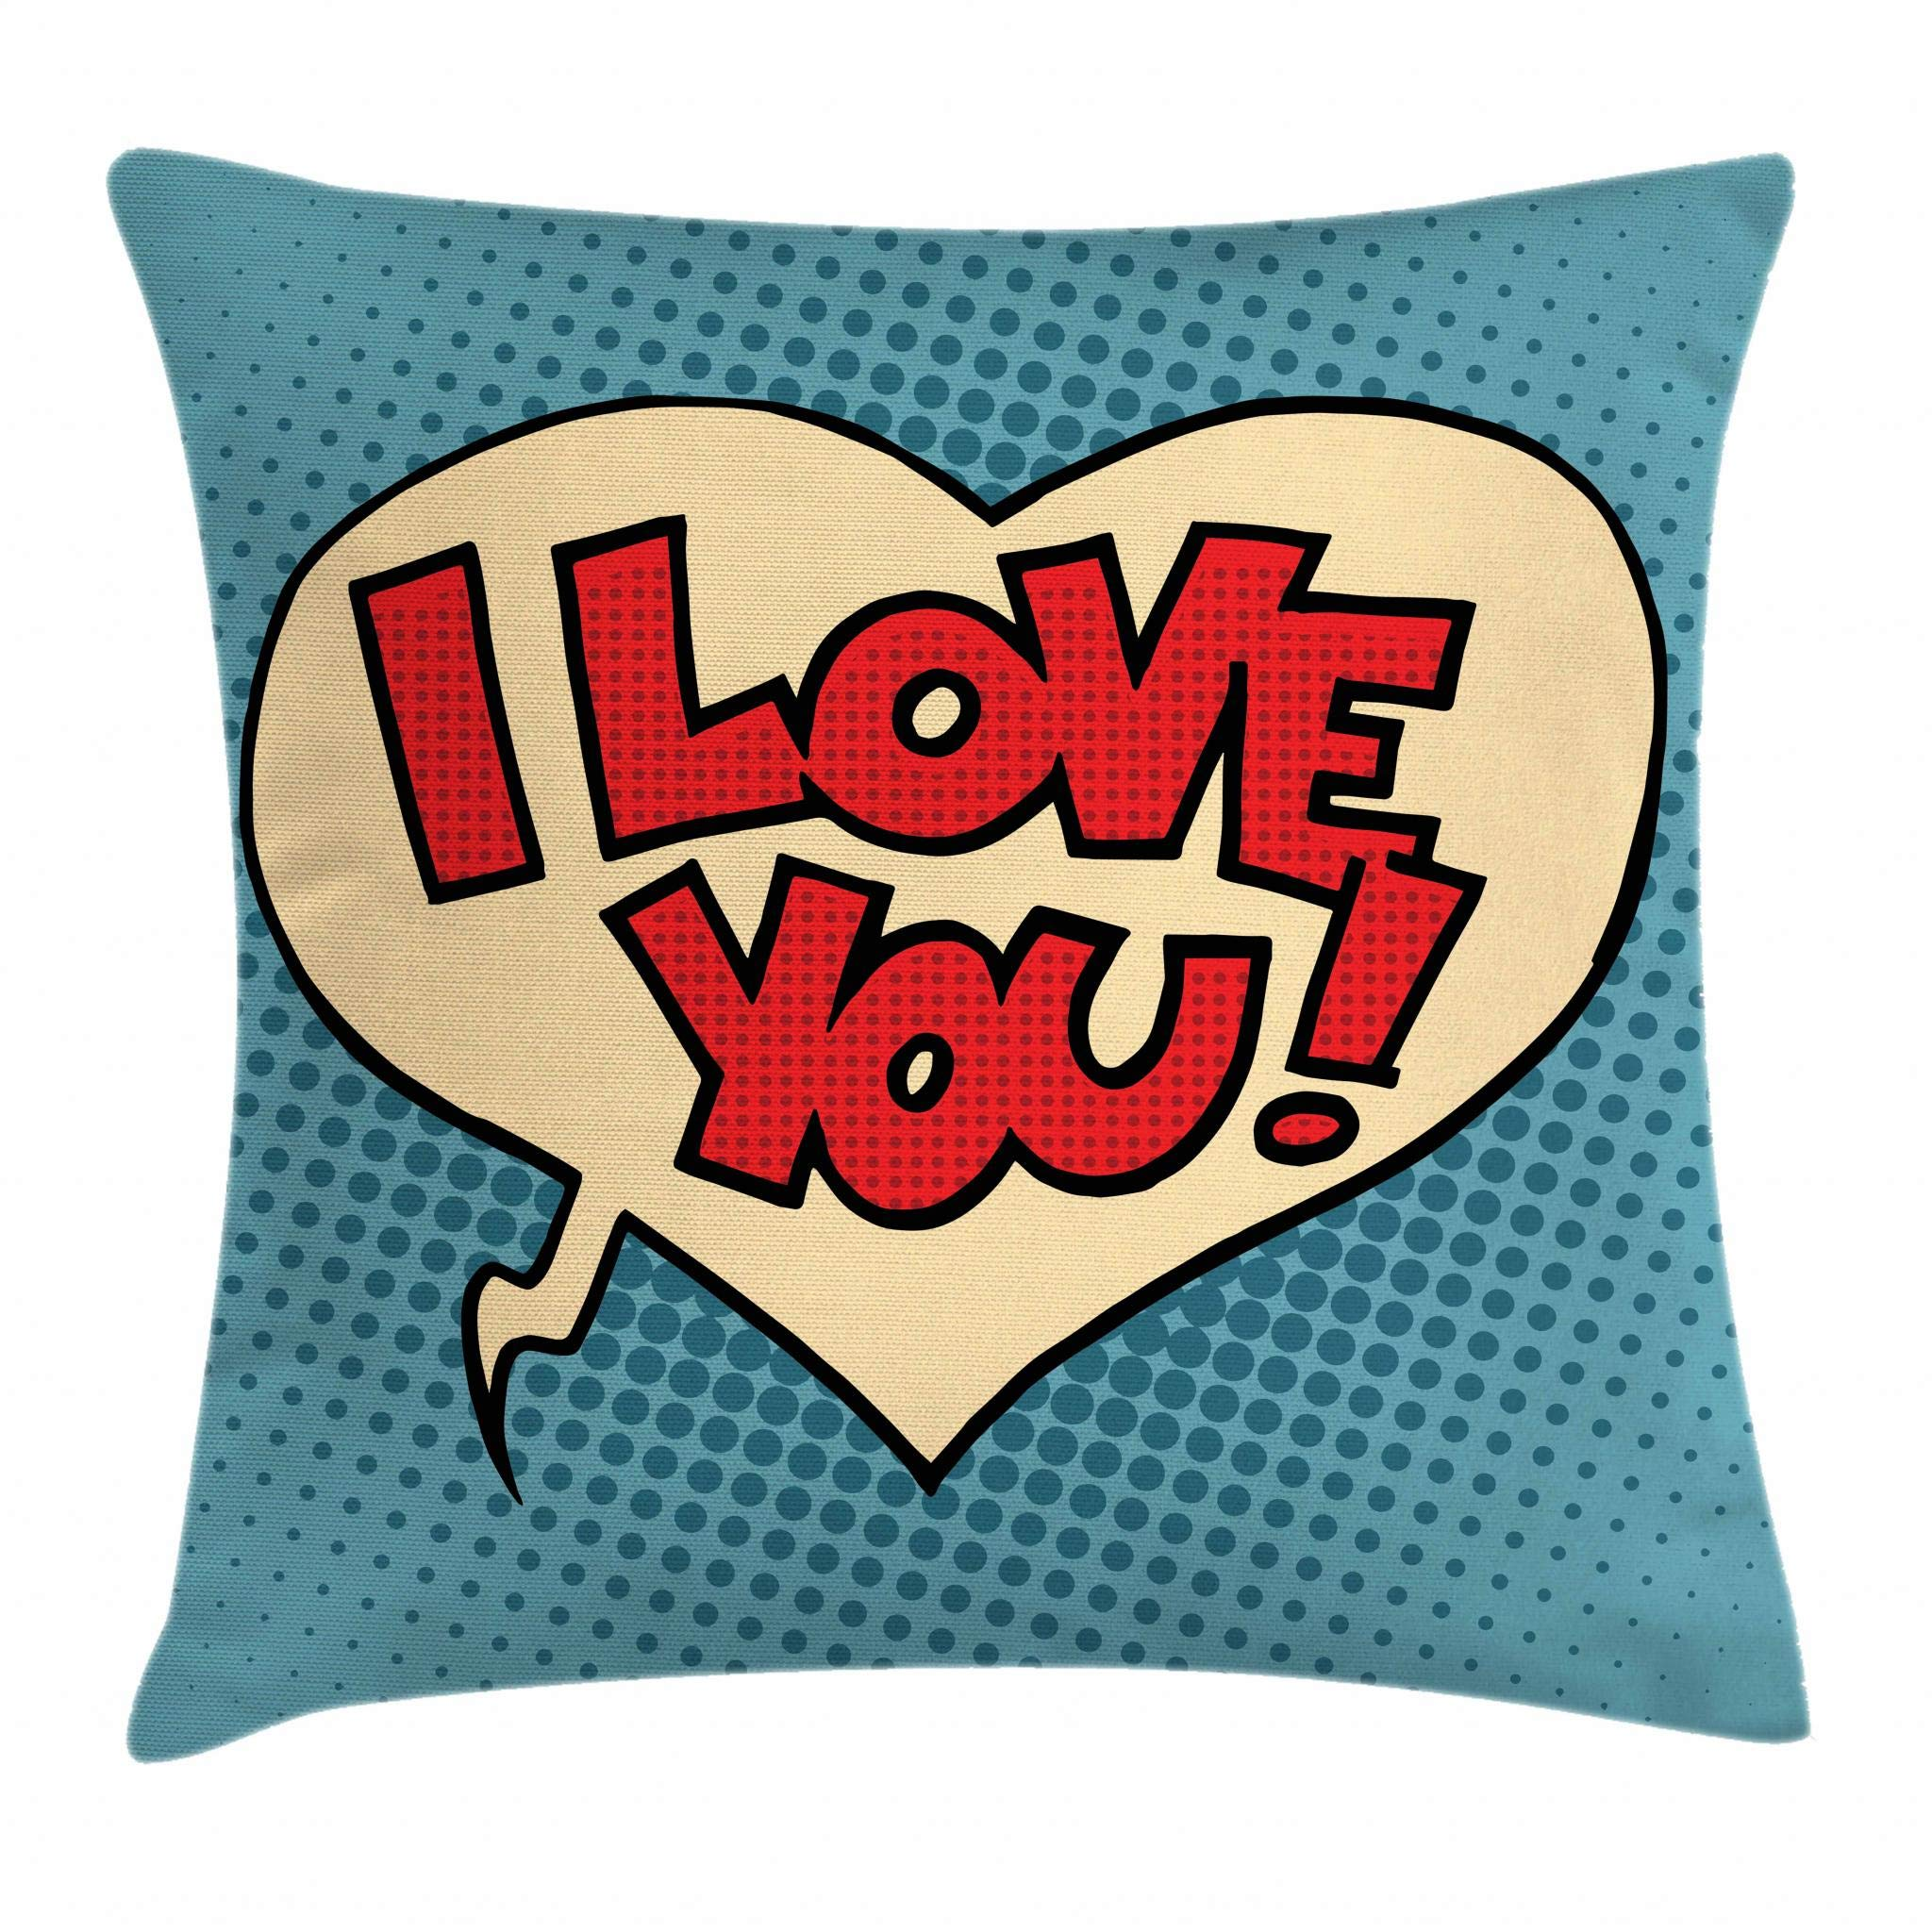 Ambesonne I Love You Throw Pillow Cushion Cover, Pop Style Comic Strip Valentine's Bubble Artistic Cartoon Graphic, Decorative Square Accent Pillow Case, 24 X 24 Inches, Petrol Blue Red Ivory